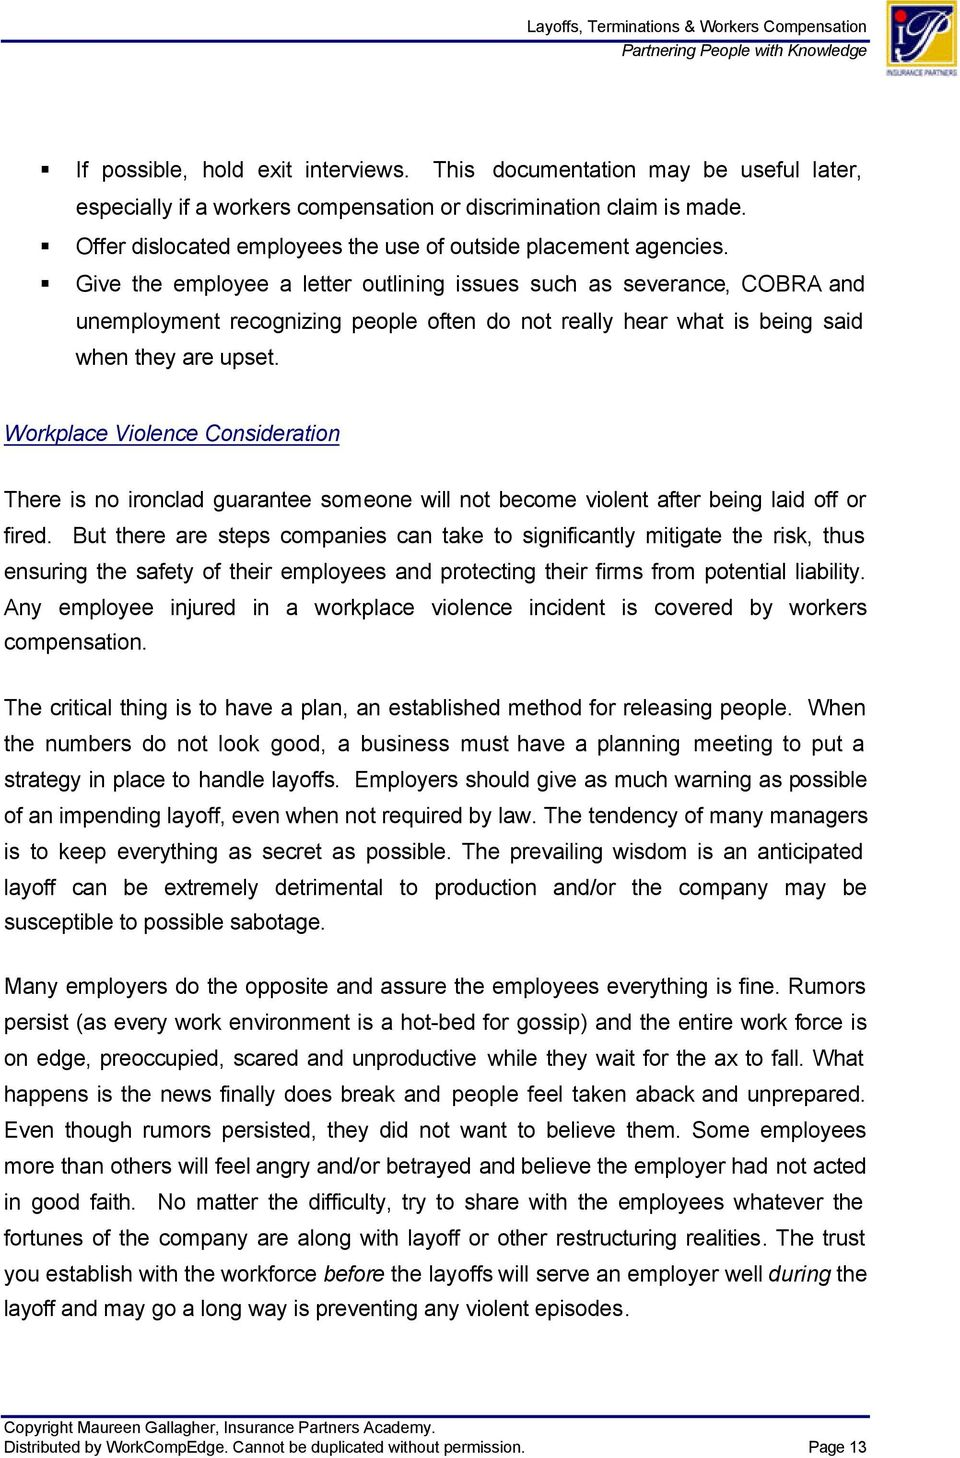 Layoffs, Terminations & Workers Compensation - PDF